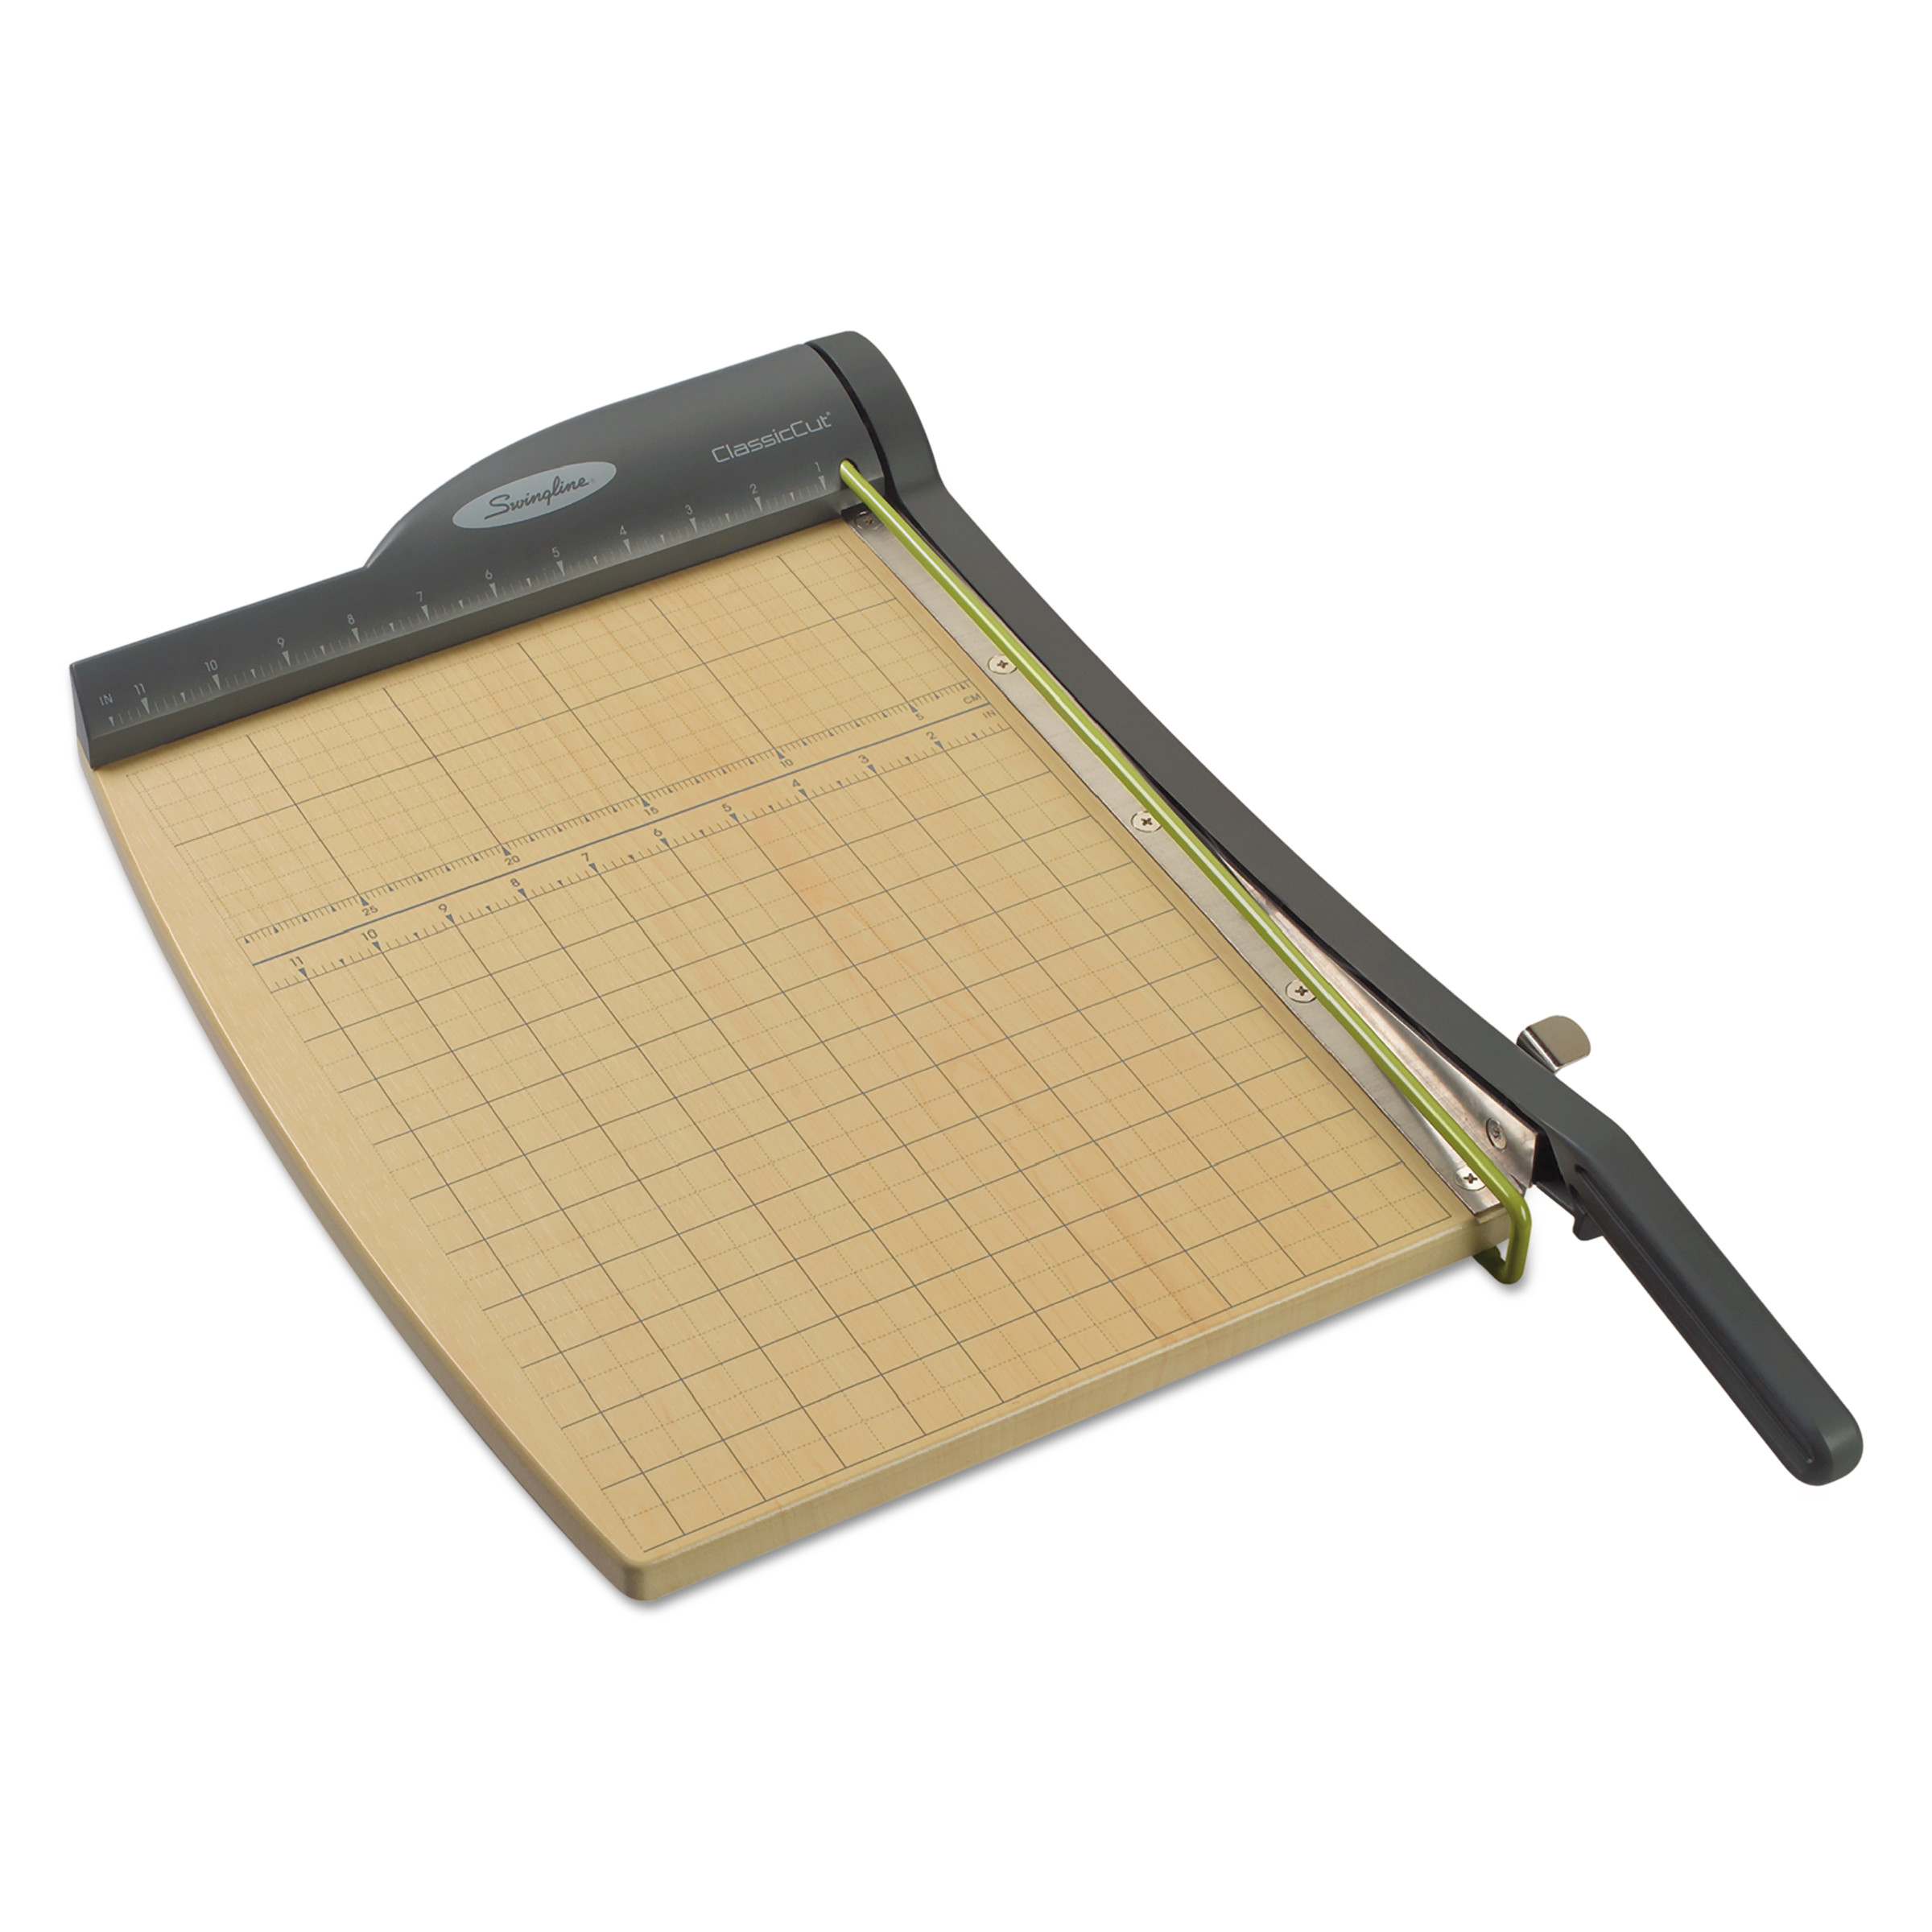 Swingline ClassicCut Pro Paper Trimmer, 15 Sheets, Metal/Wood Composite Base, 12 x 15 -SWI9115